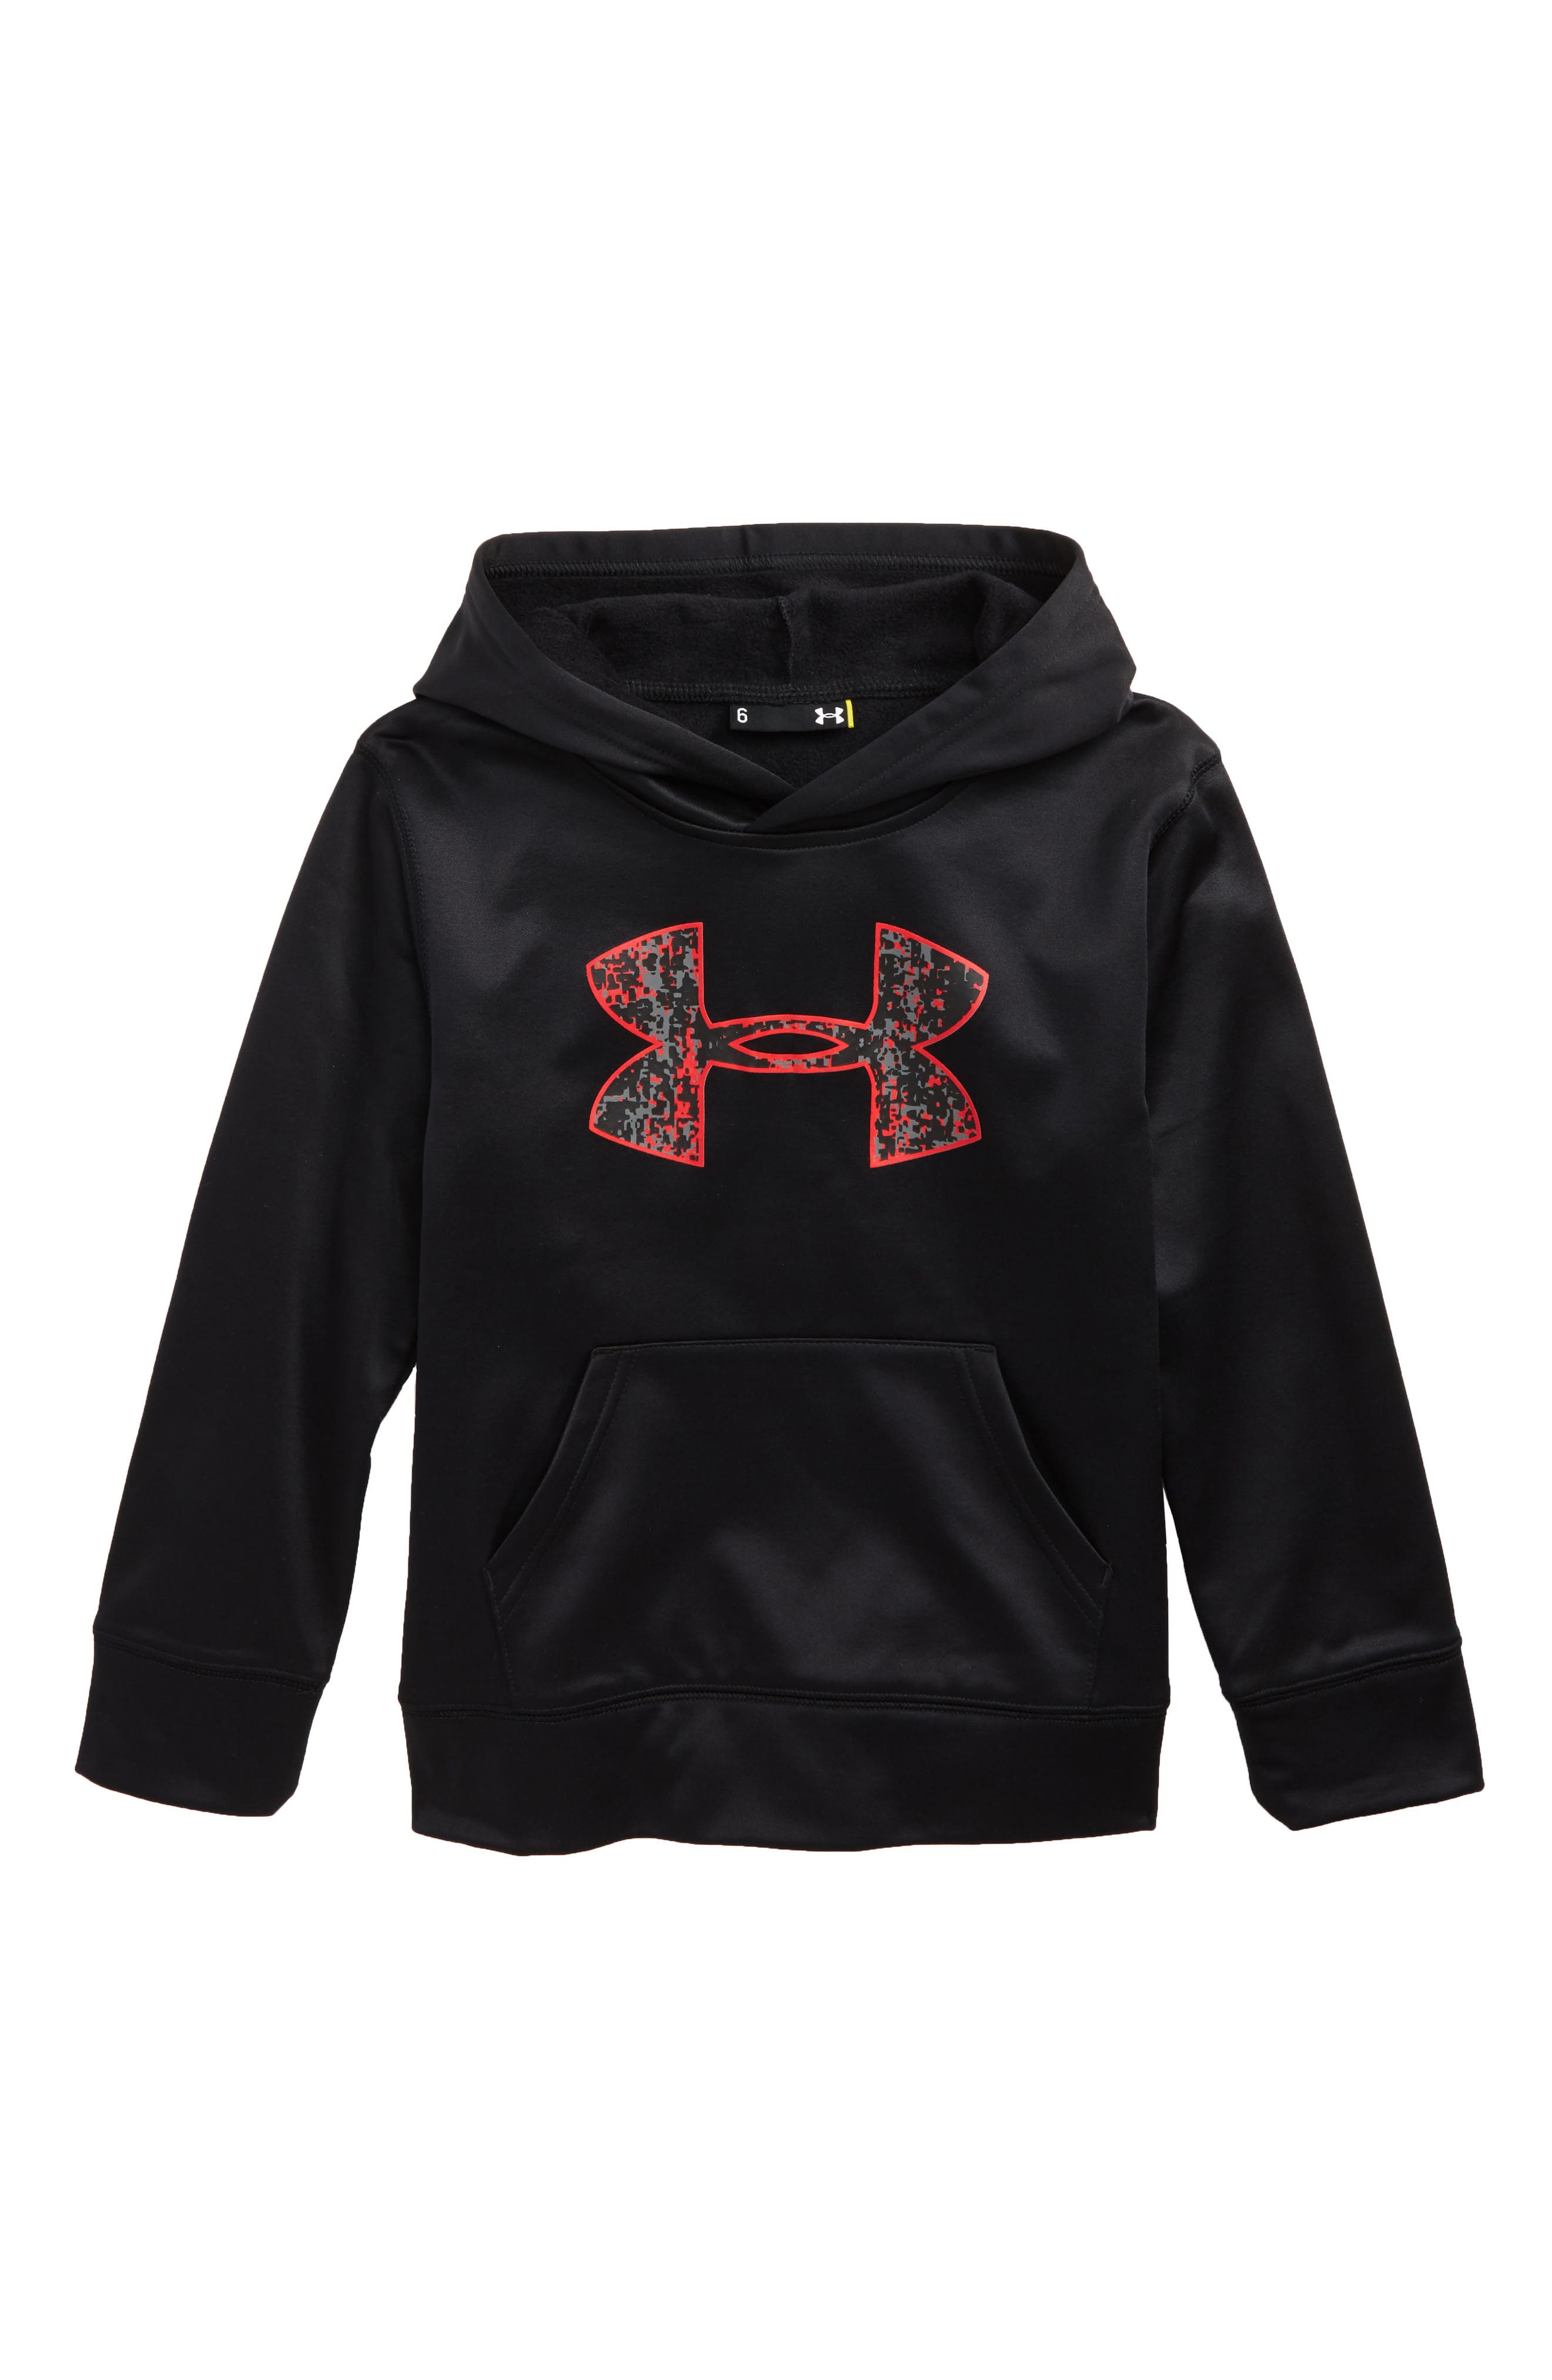 Main Image - Under Armour Digital City Logo Pullover Hoodie (Little Boys)